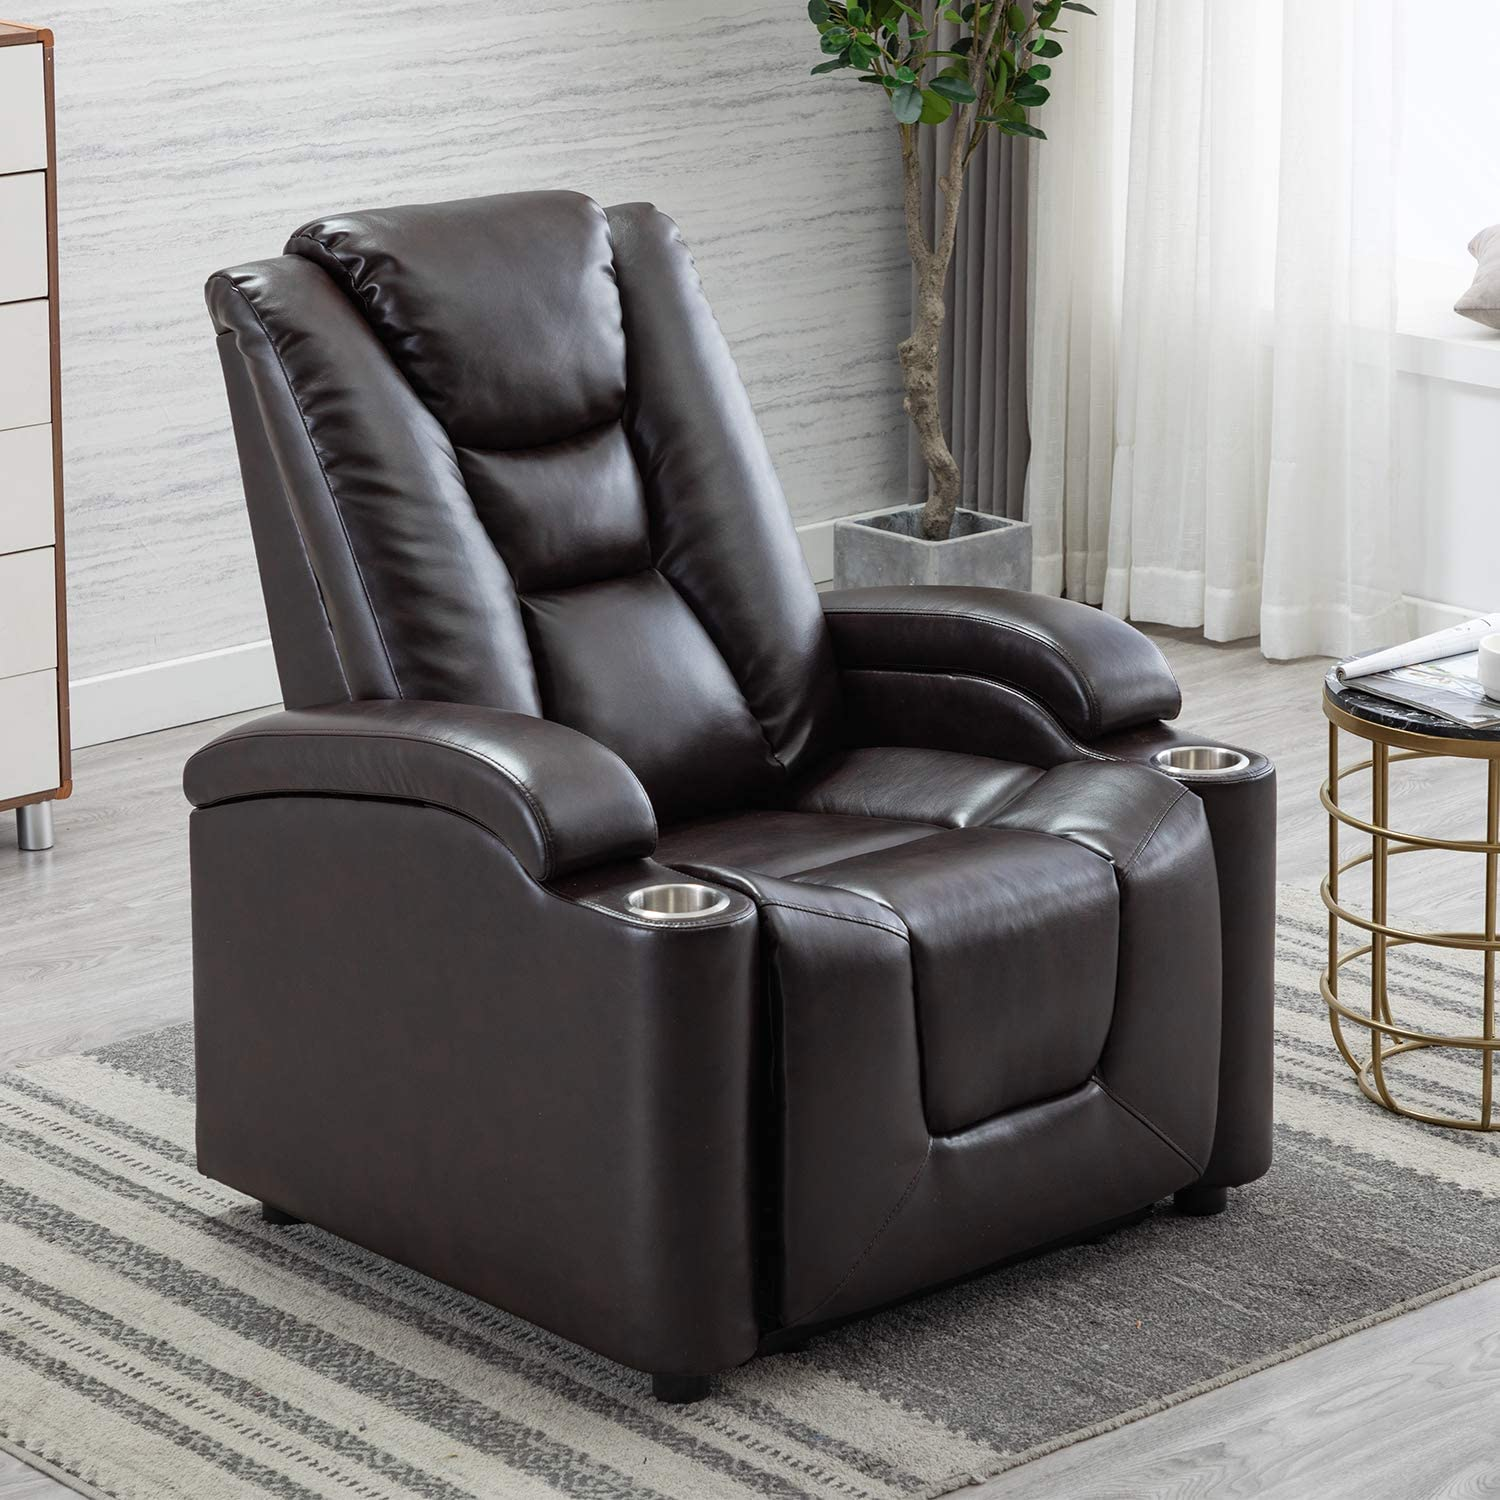 EBELLO Breathable Leather Gel Electric Power Recliner&Headrest, Home Theater Chair with Cup Holder&Storage (Brown)